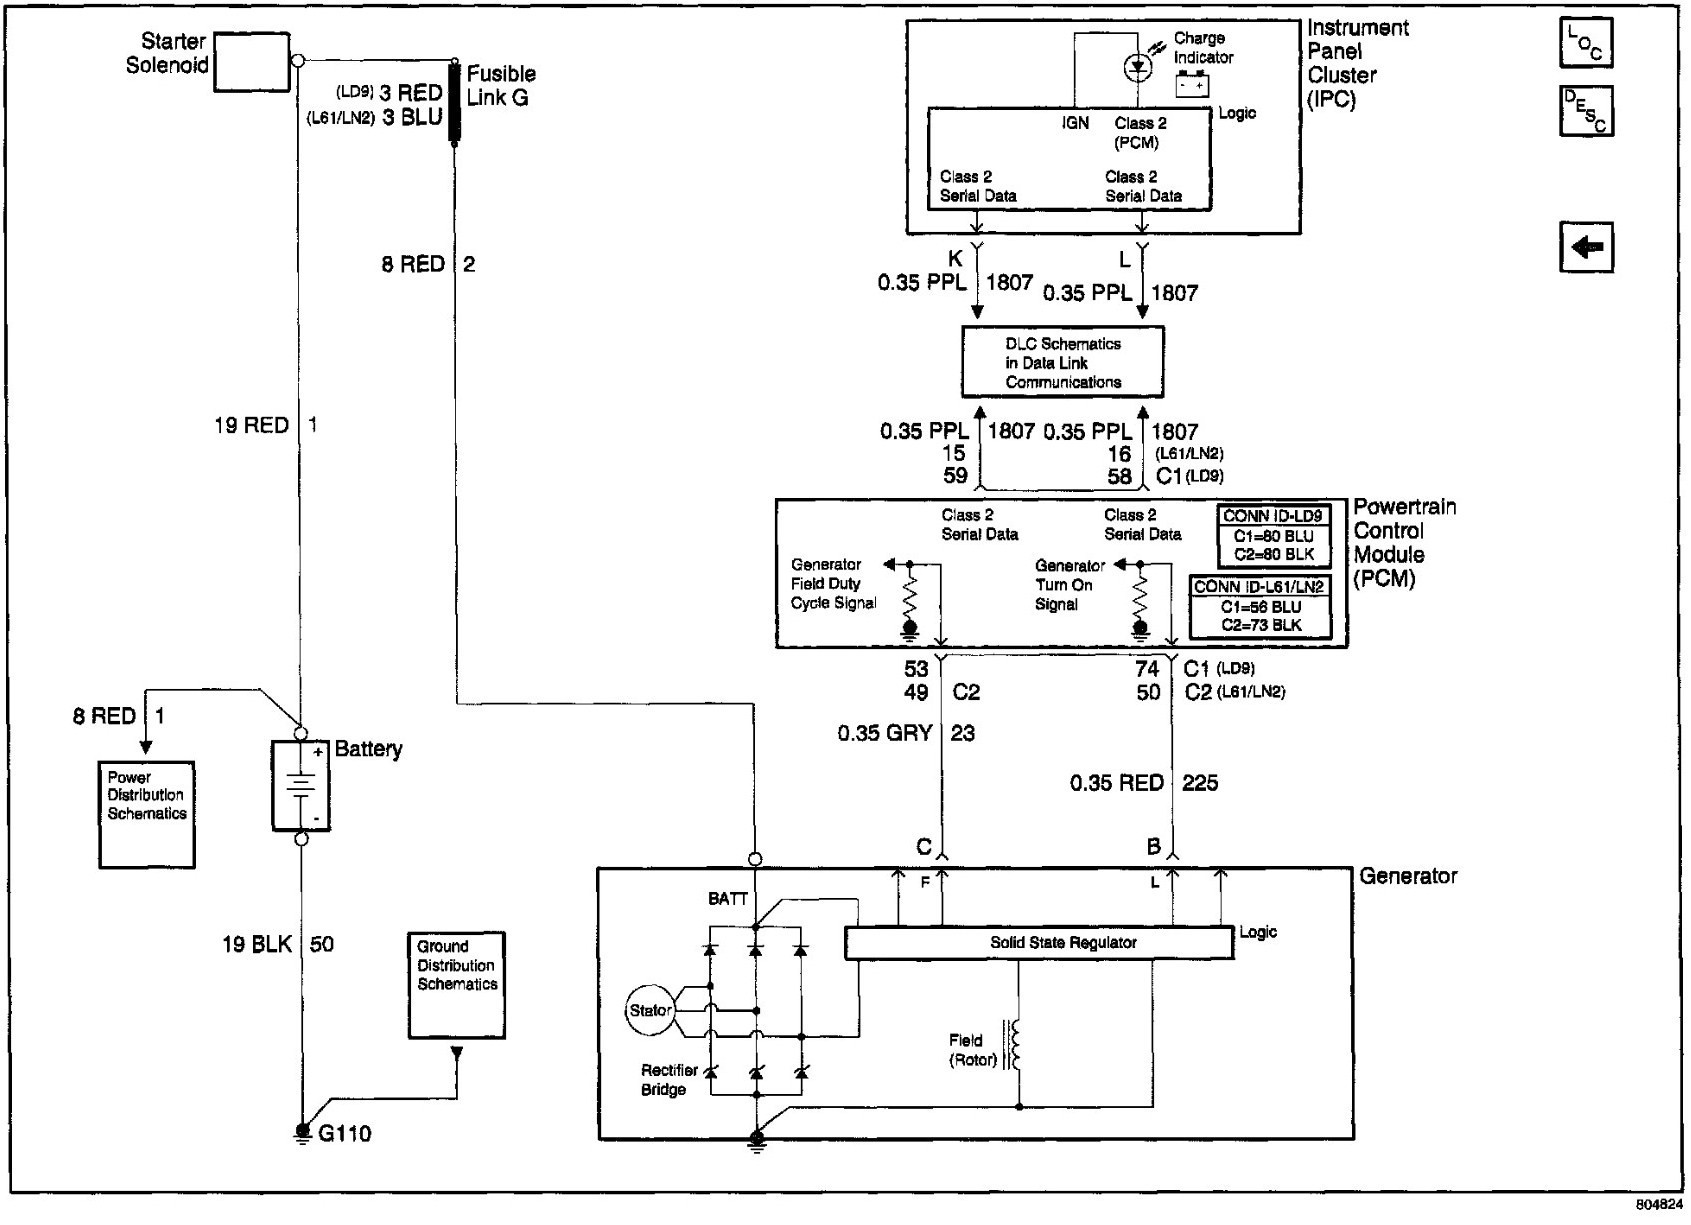 Klr 650 Wiring Diagram Kawasaki Klr650 Color Well Detailed 650r 250 On Rh Abetter Pw 2000 Ford Ranger